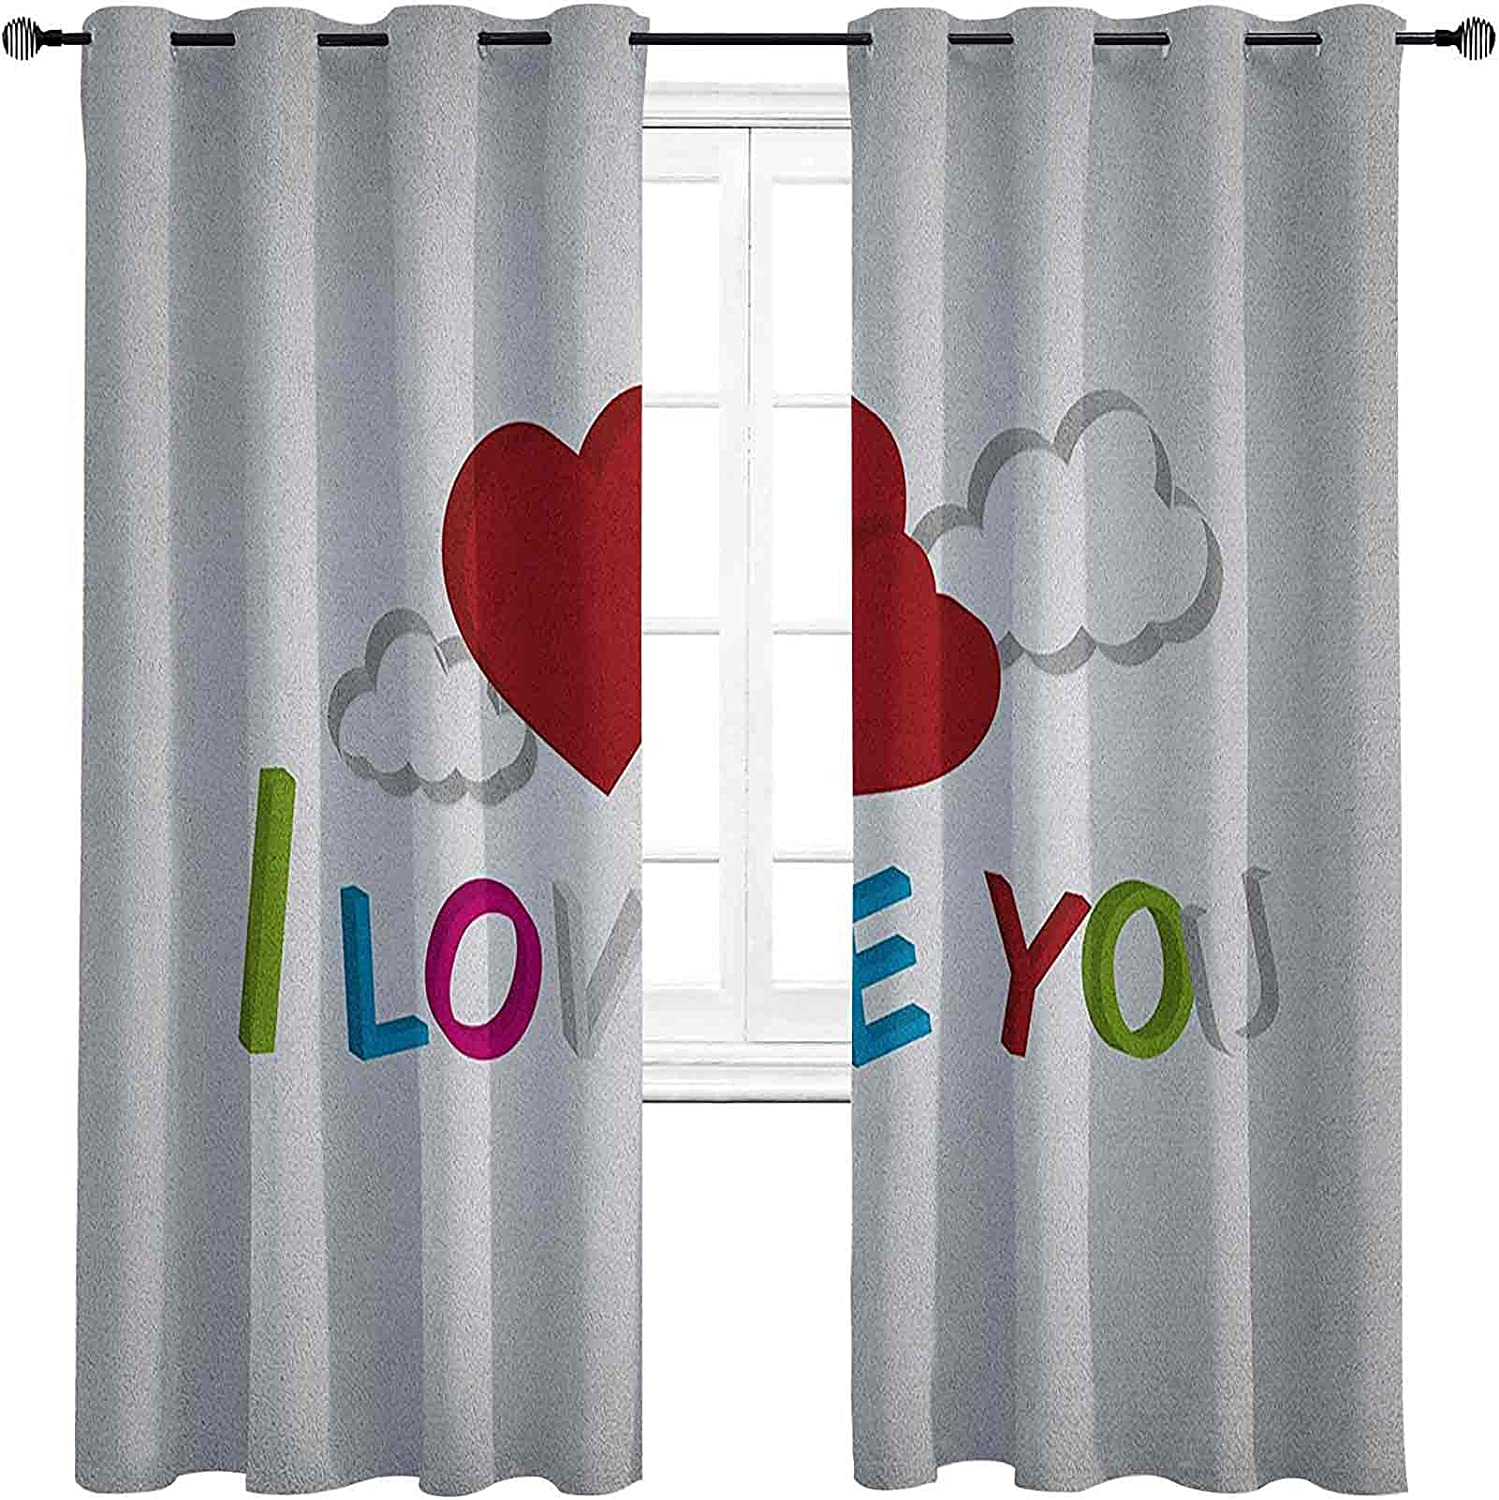 I Love You Room A surprise price is realized Darkened Grommet Max 78% OFF 3D Curtain Letters Insulation